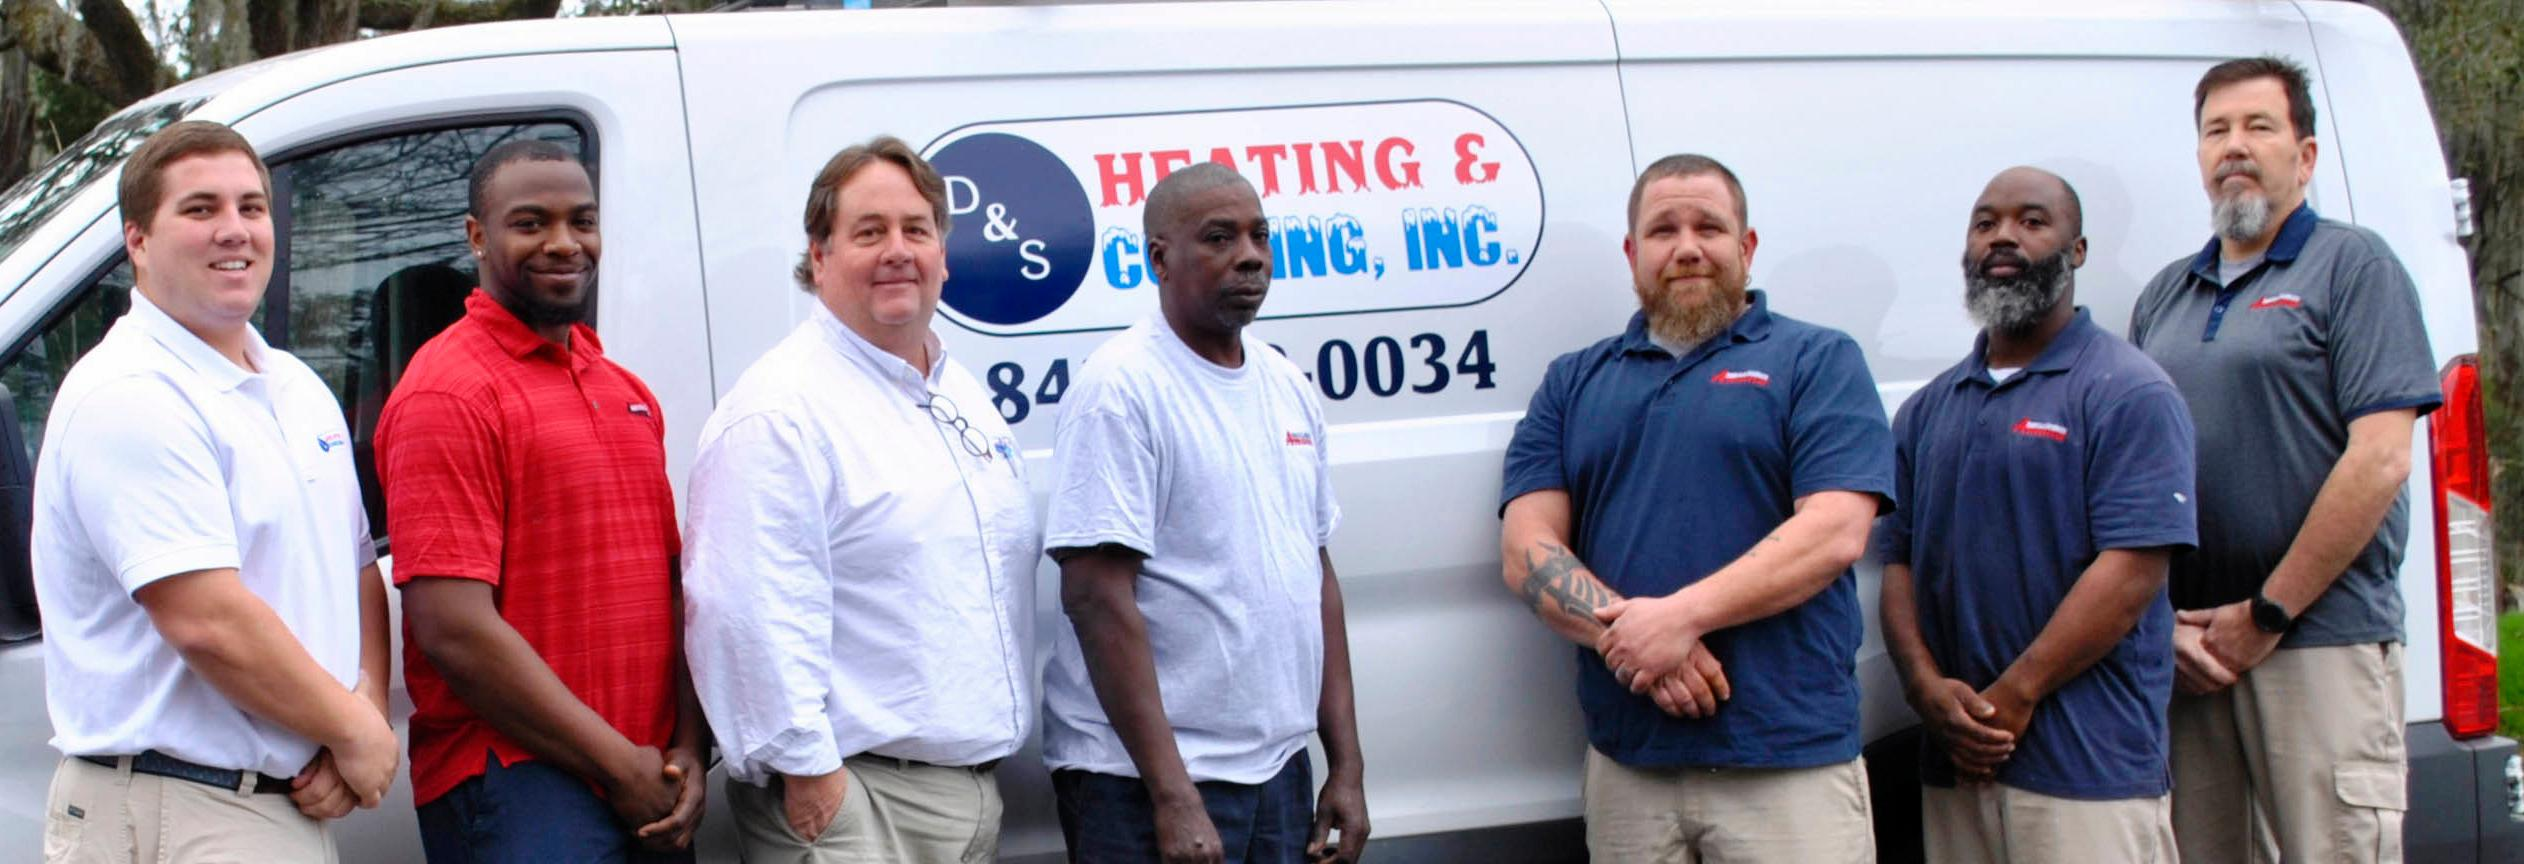 D & S Heating & Cooling proudly serving Beaufort for over 50 Years!